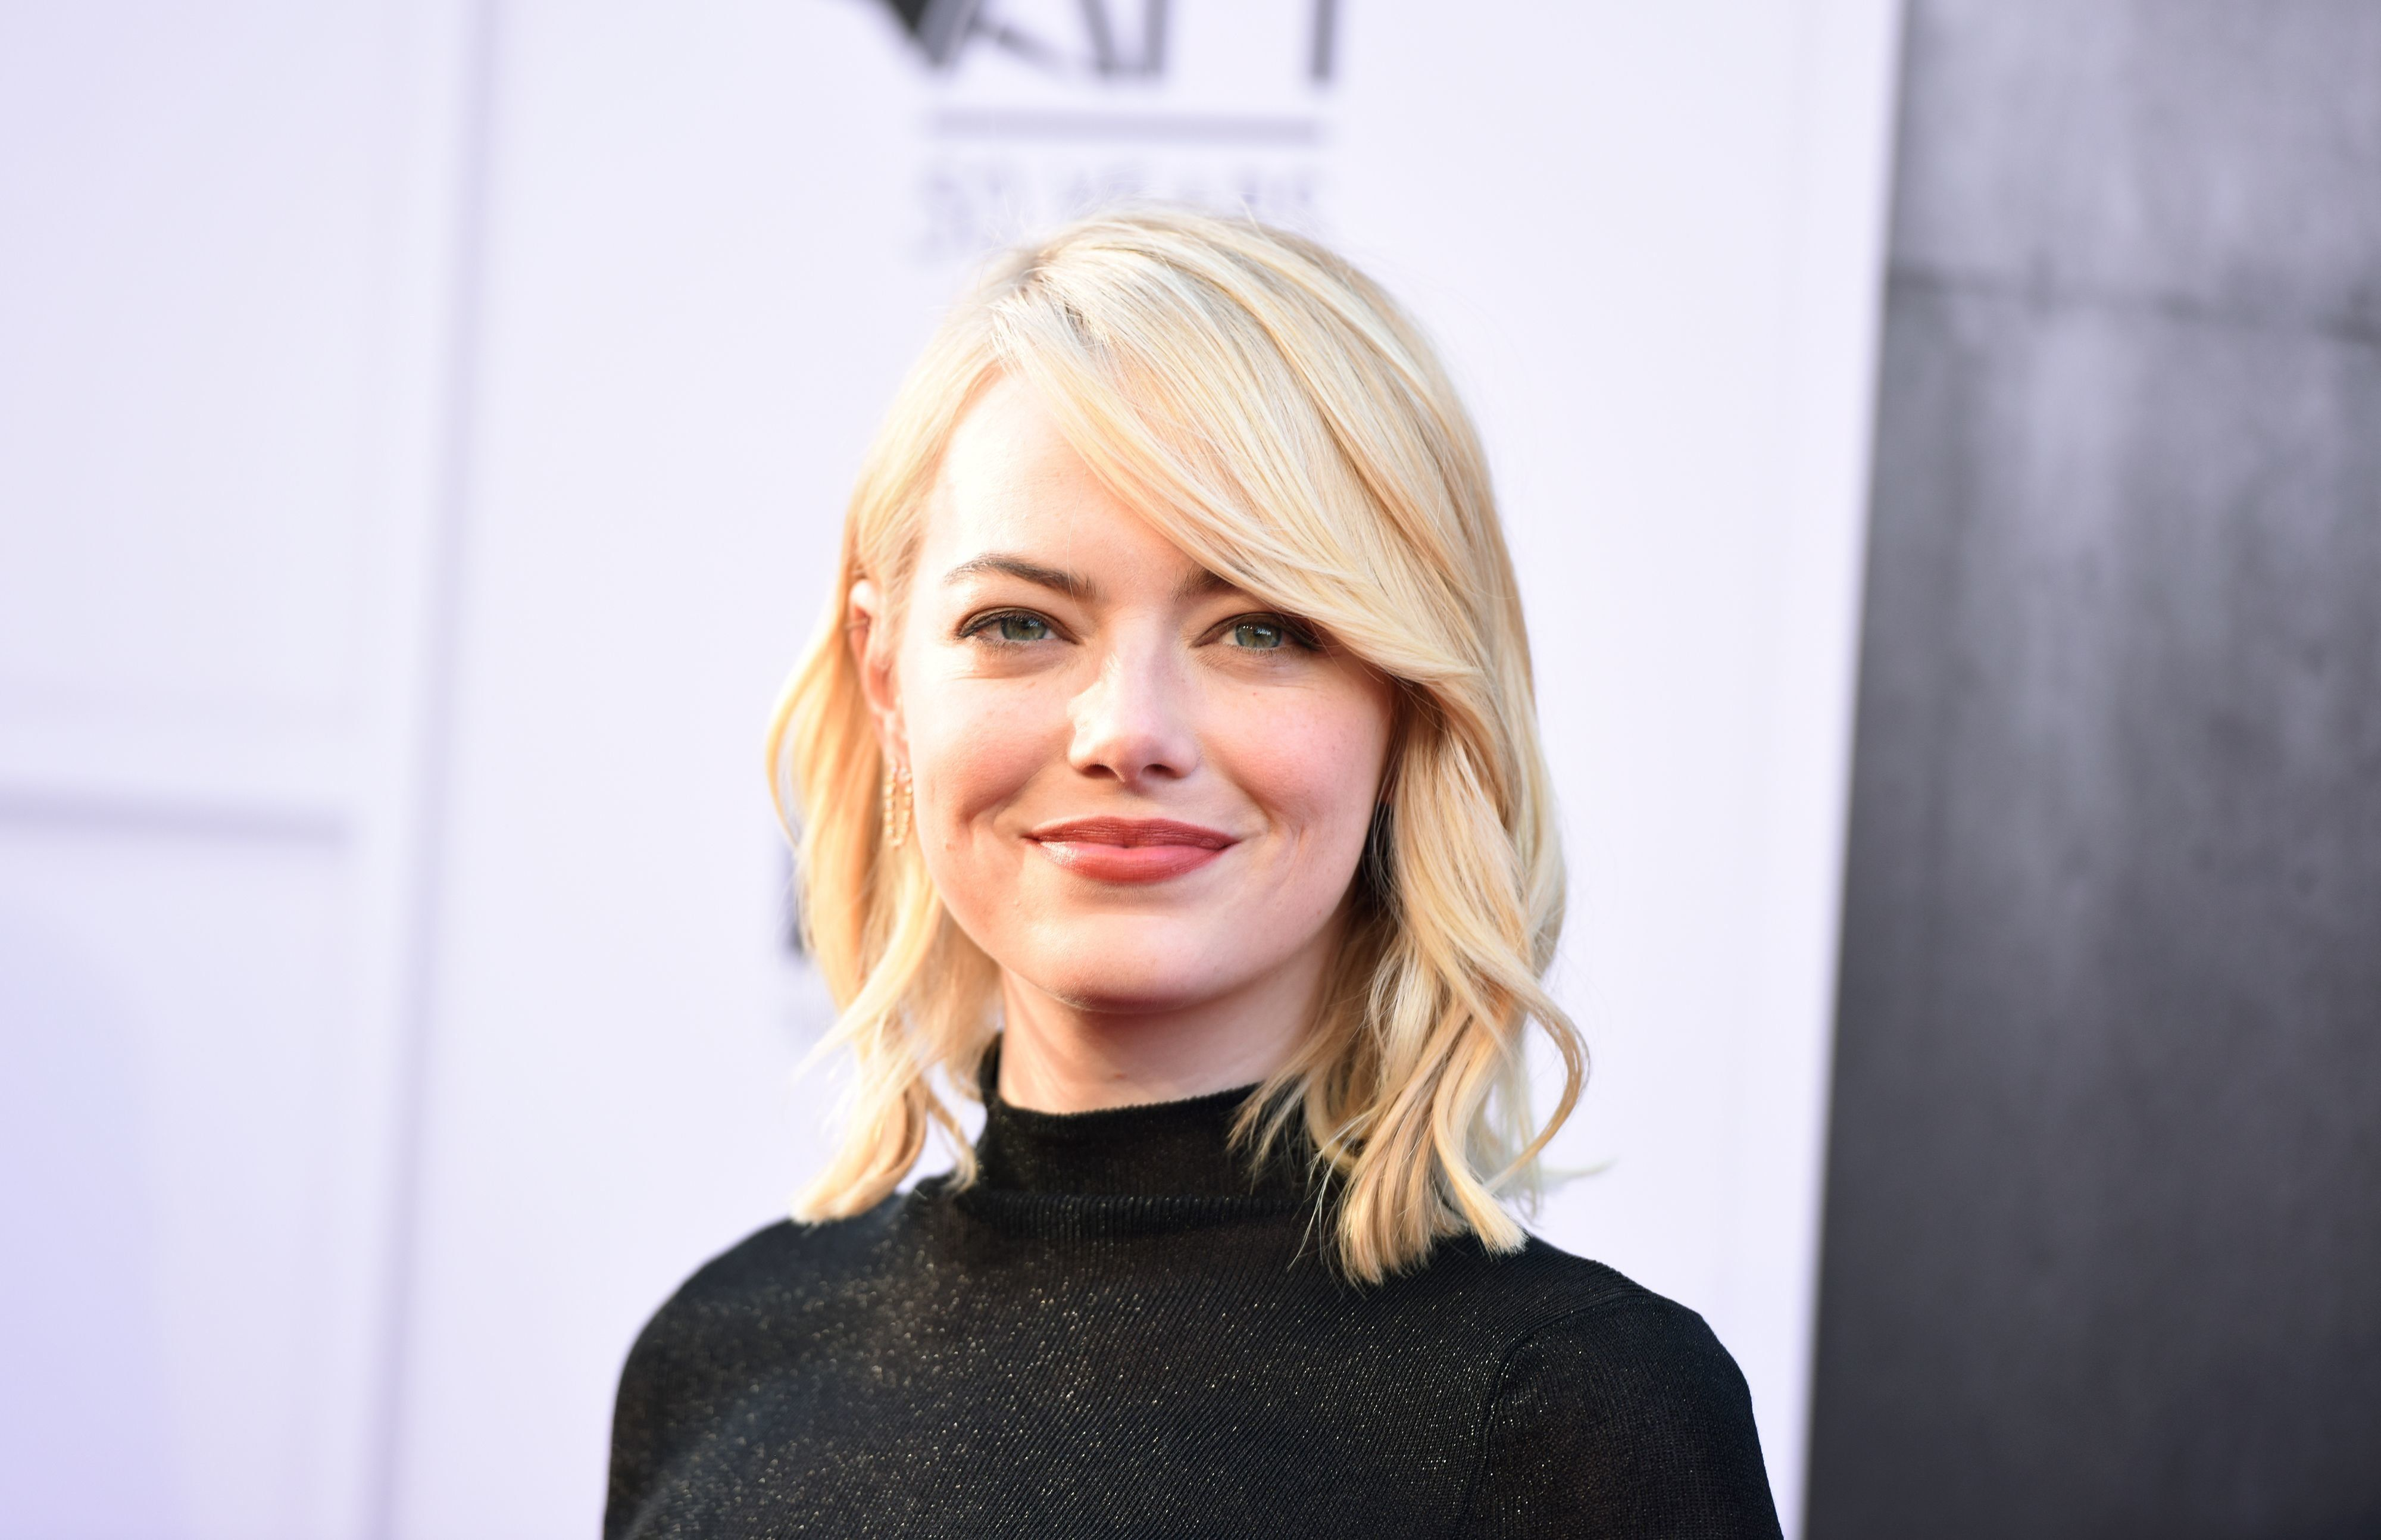 Actress Emma Stone attends the 45th AFI Life Achievement Award Gala honoring Diane Keaton, June 8, 2017, at the Dolby Theatre in Hollywood, California. / AFP PHOTO / Robyn Beck        (Photo credit should read ROBYN BECK/AFP/Getty Images)